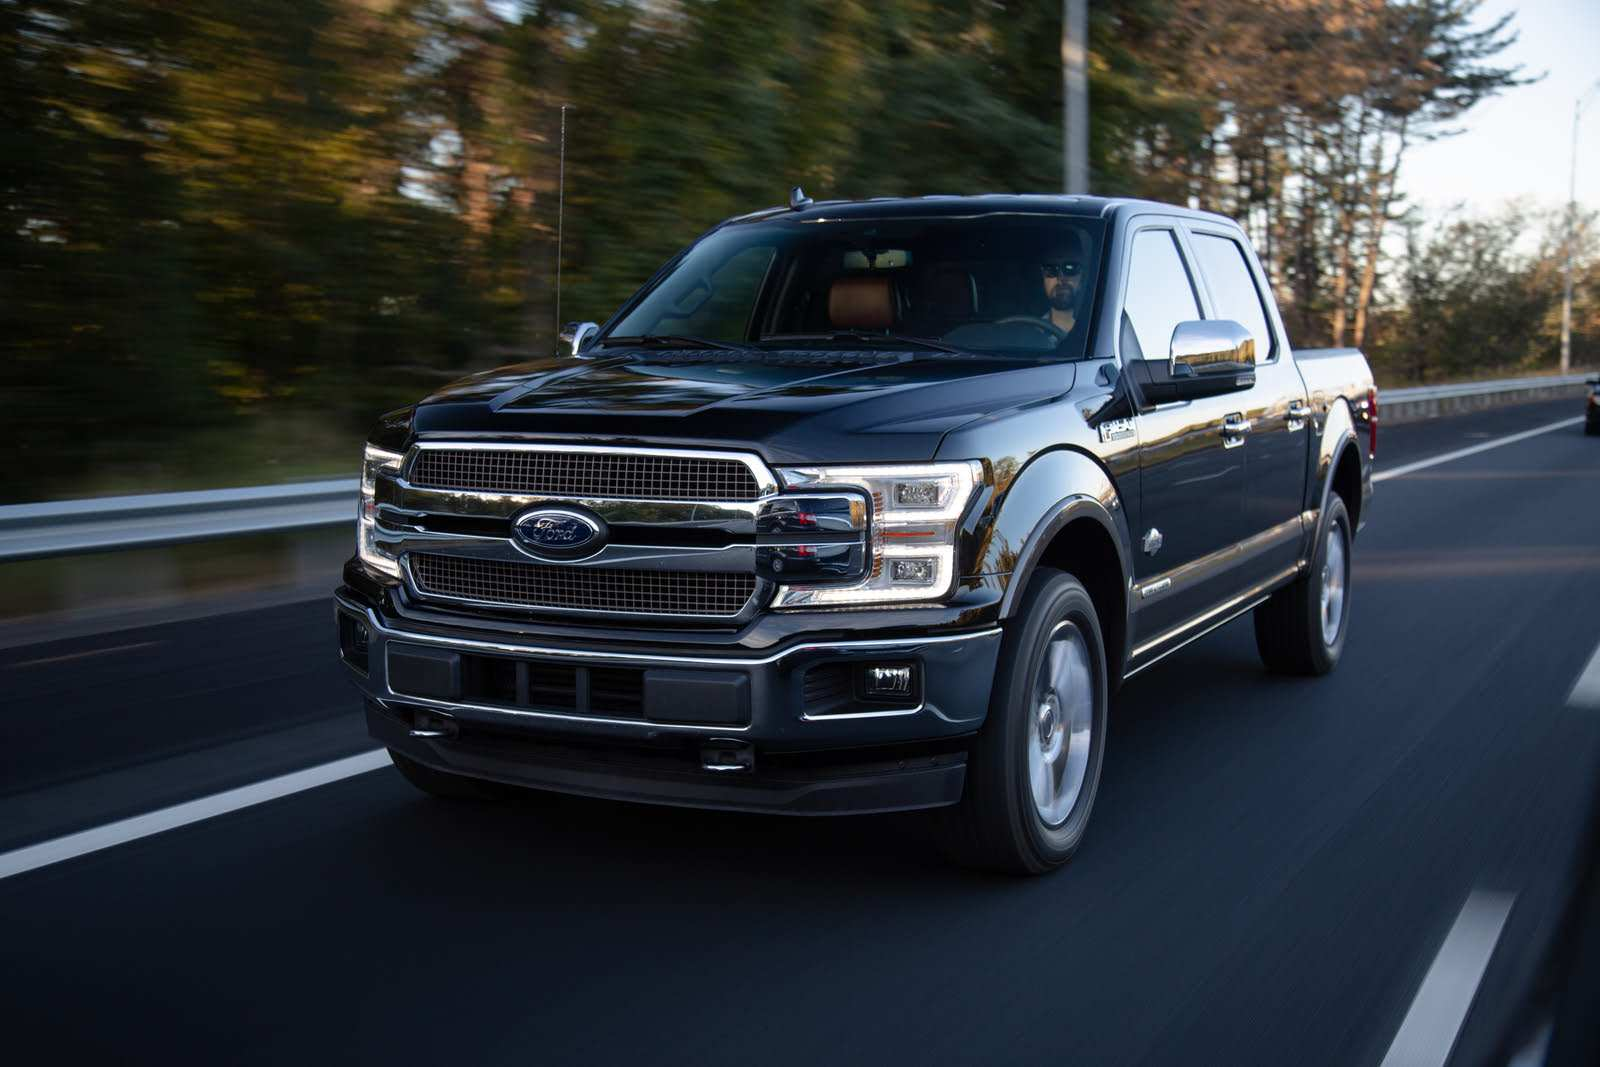 22 Concept of 2019 Ford F 150 Prices with 2019 Ford F 150